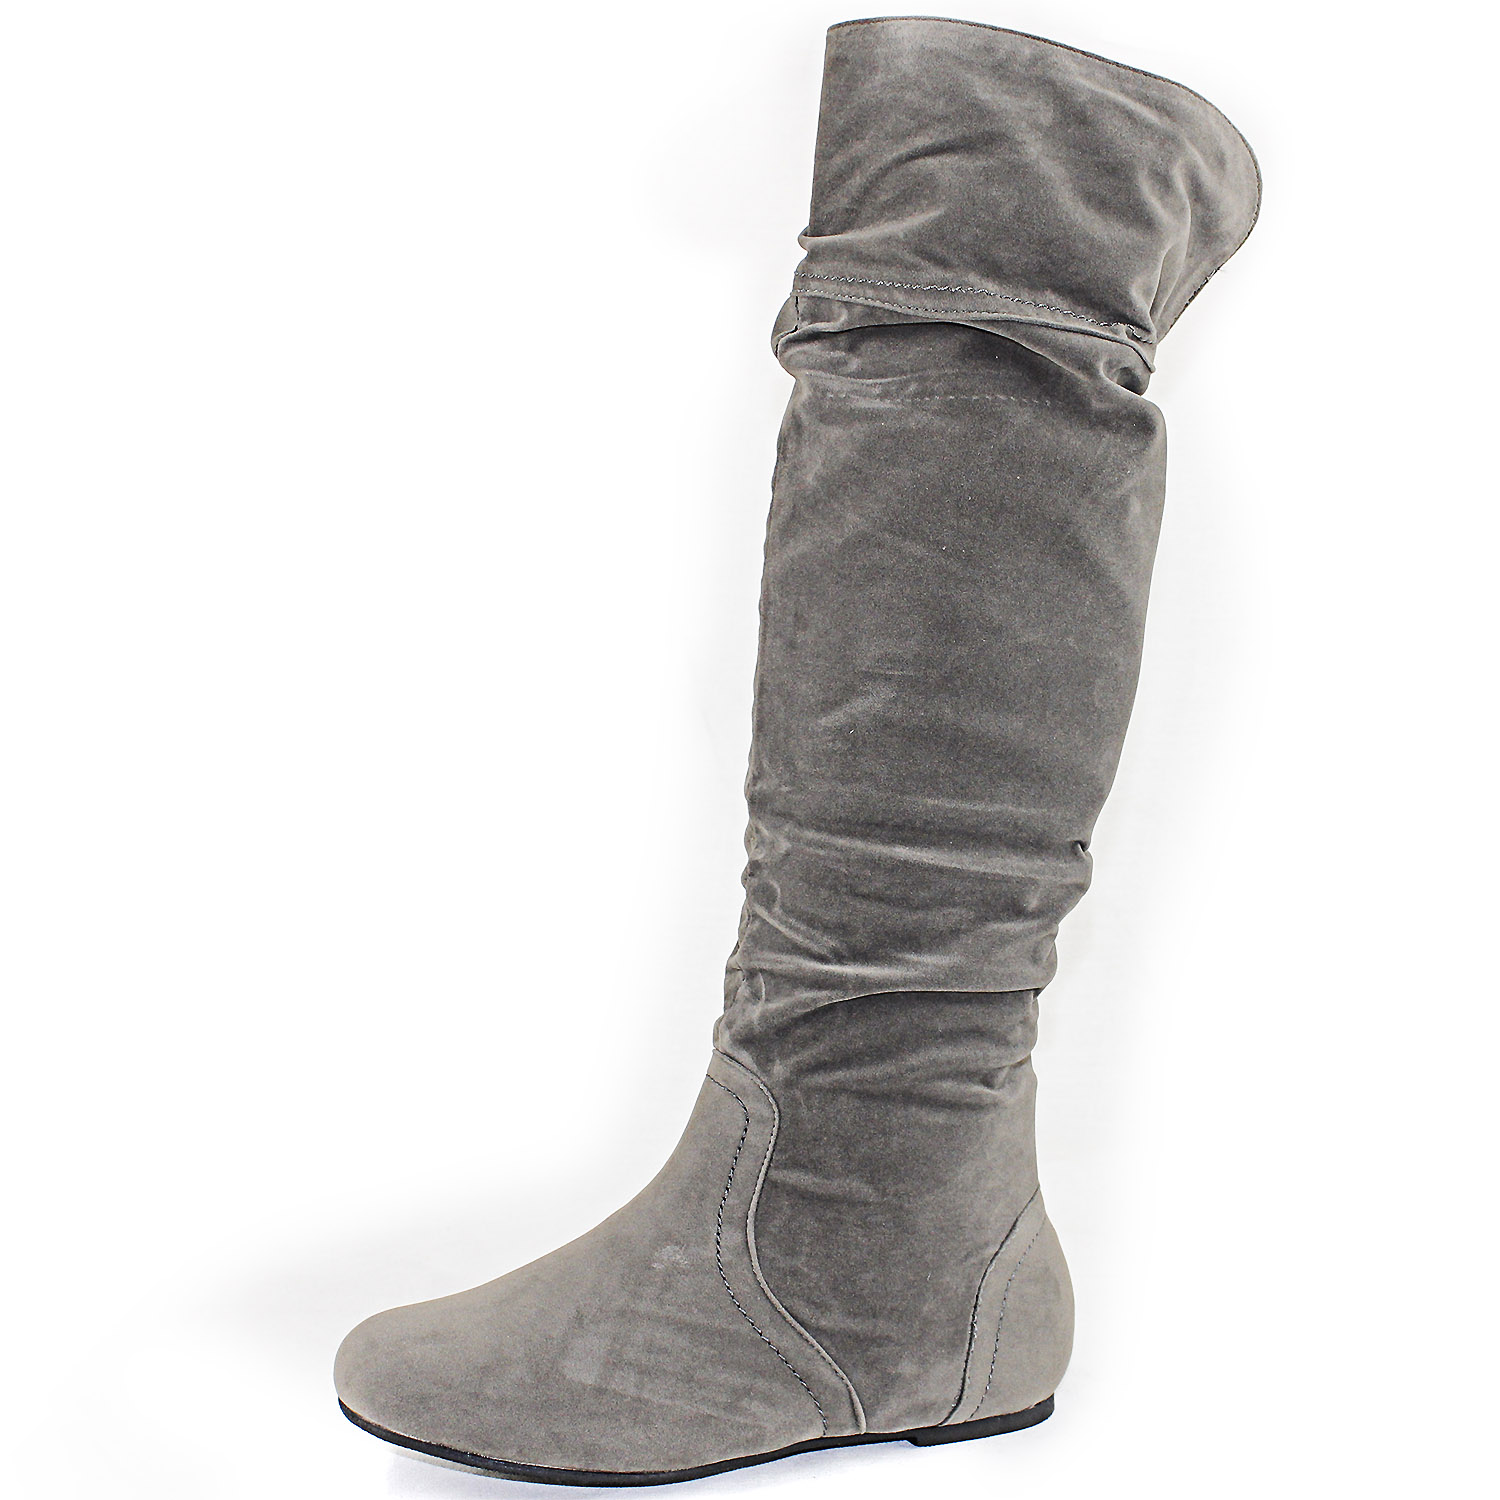 Top Moda Women's Top Moda Post-2 SV Round Toe Mid High Boots at Sears.com